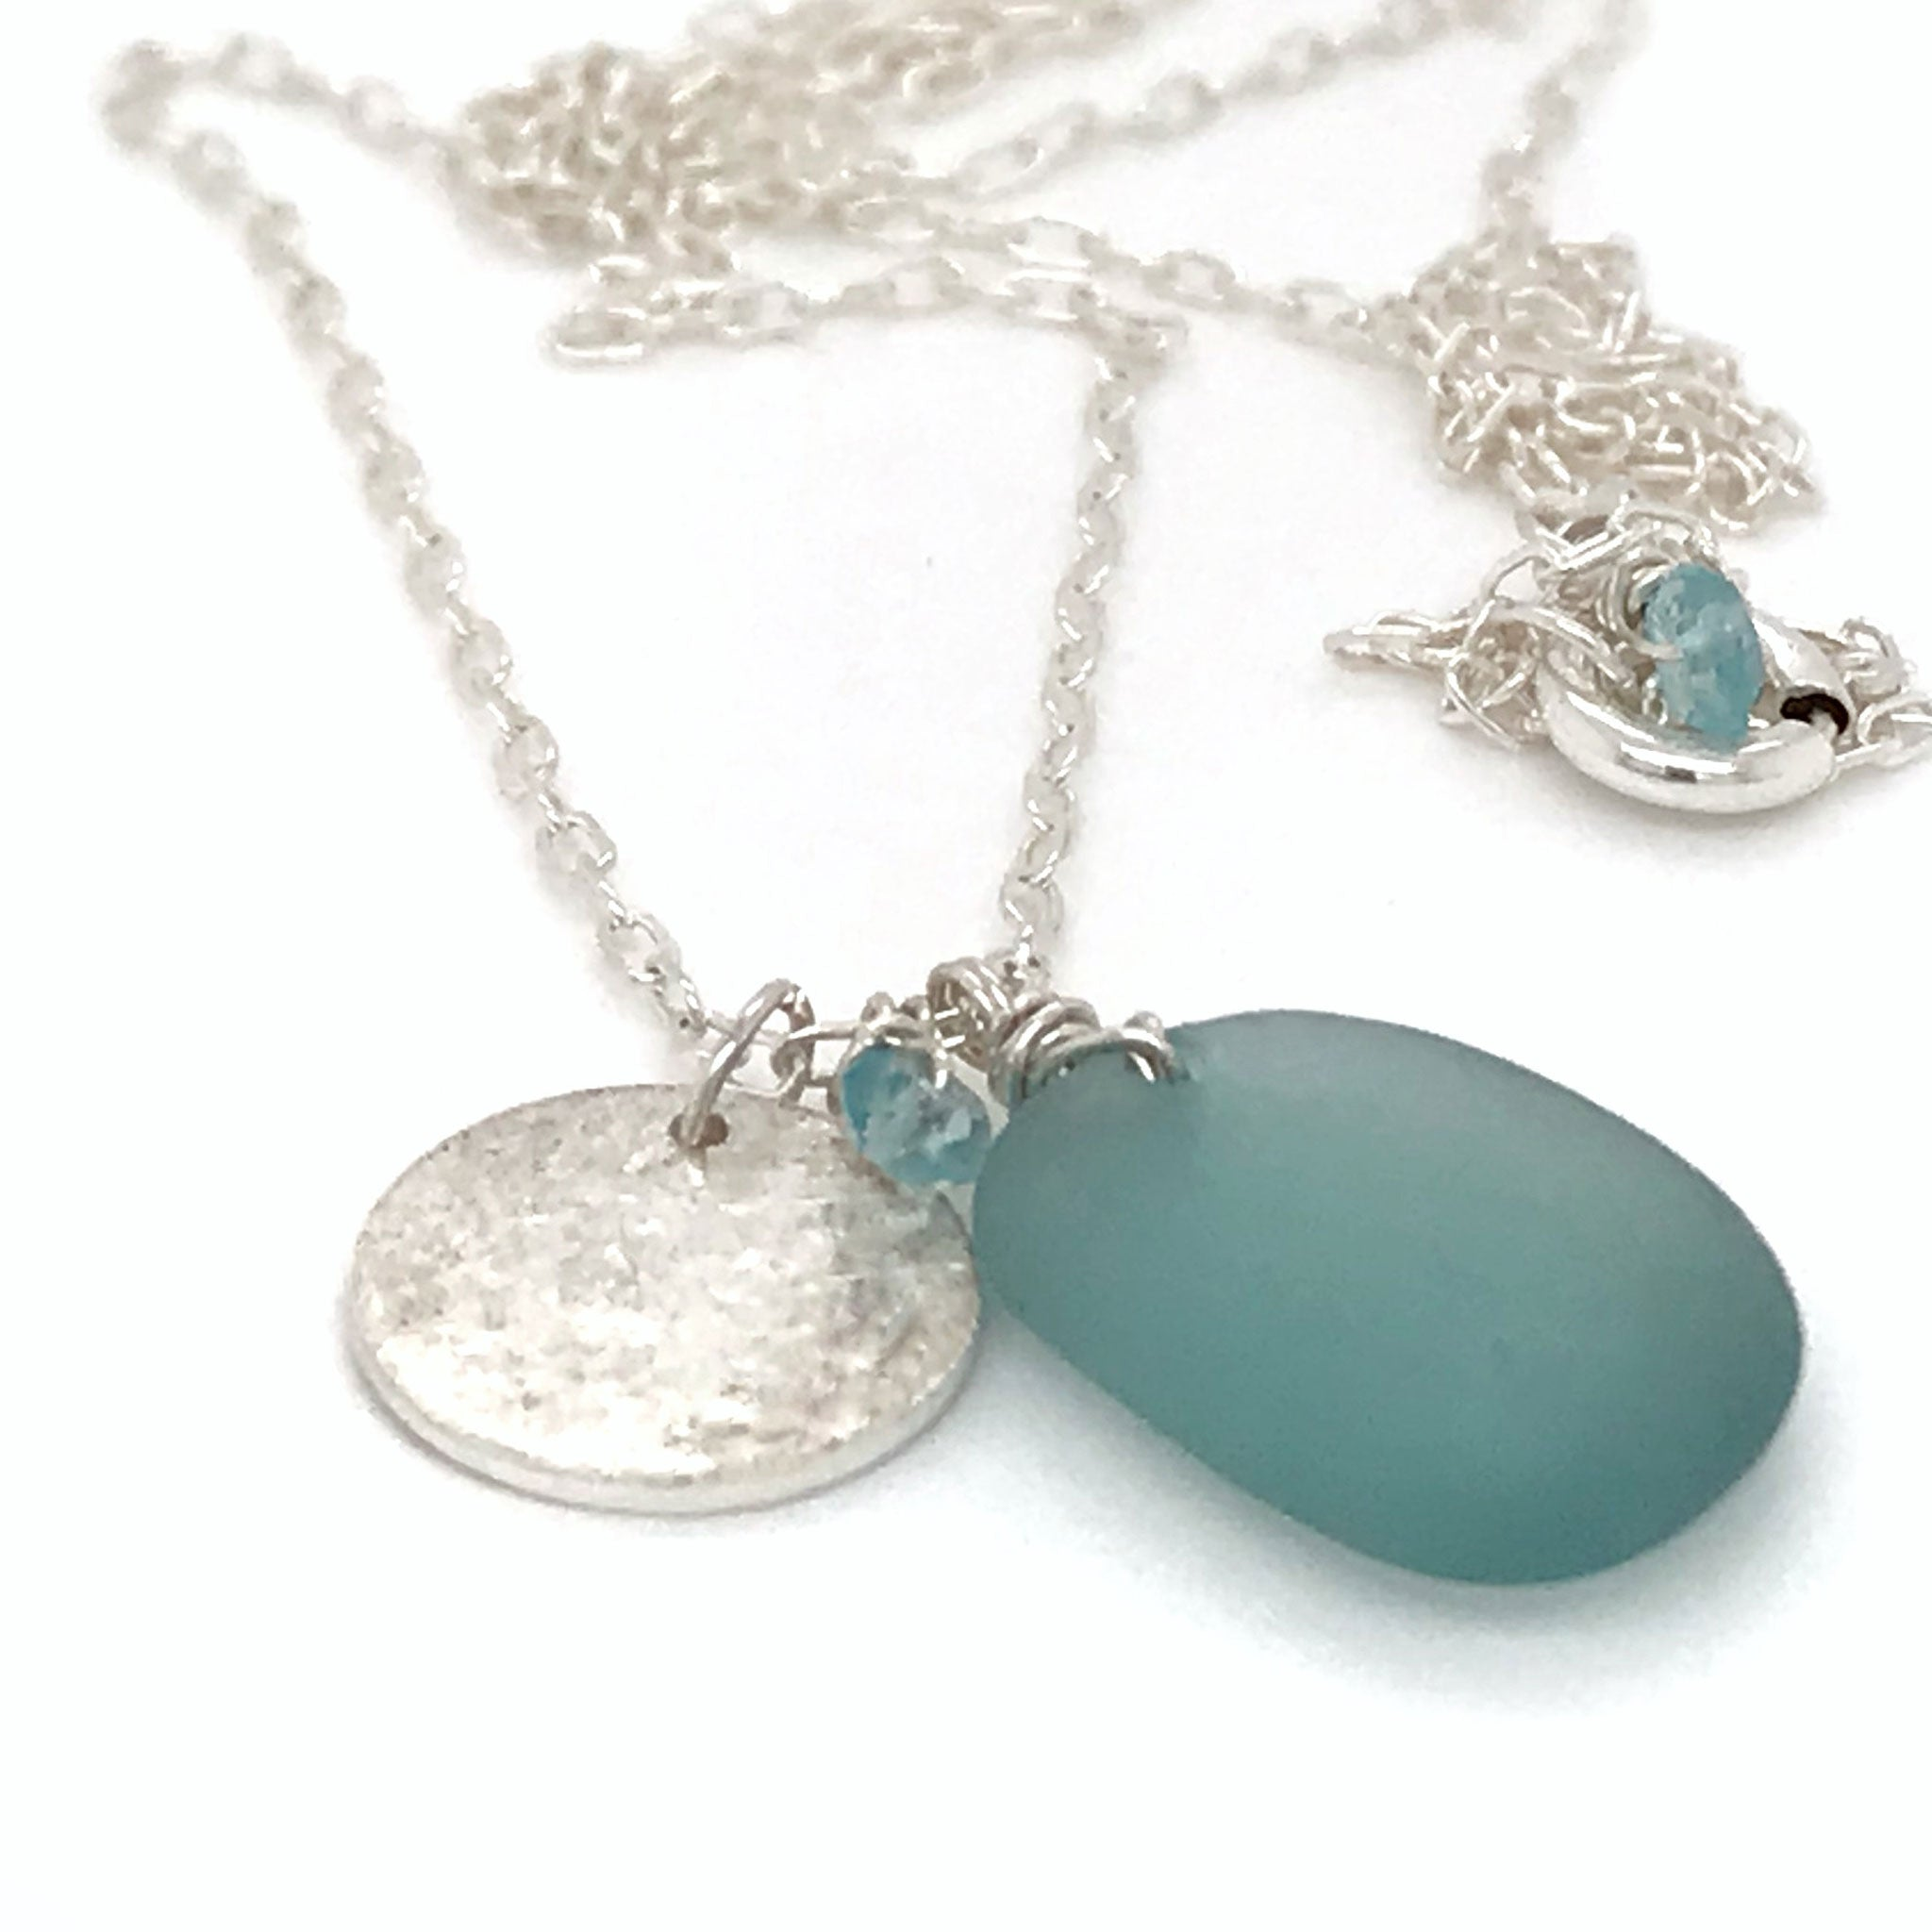 aqua seaglass necklace with sterling silver disc charm kriket Broadhurst jewellery